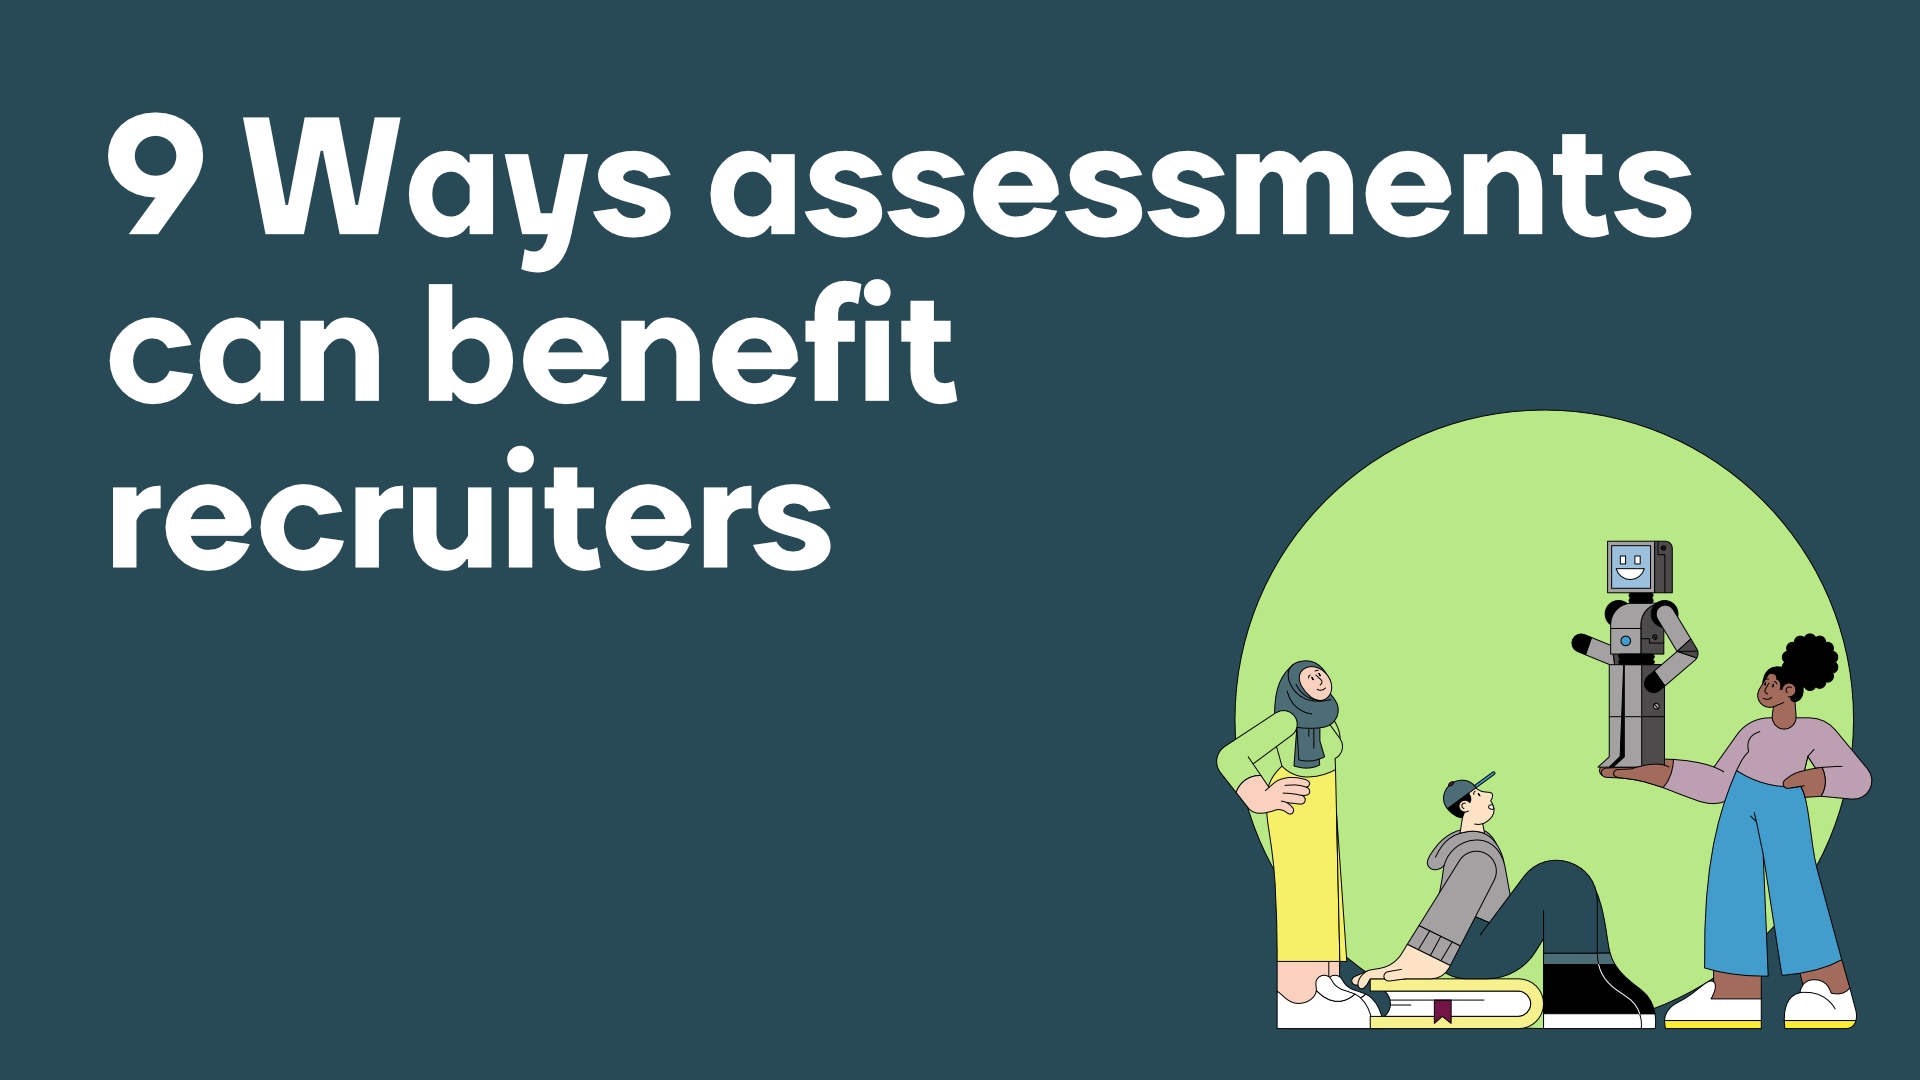 9 Ways assessments benefit recruiters